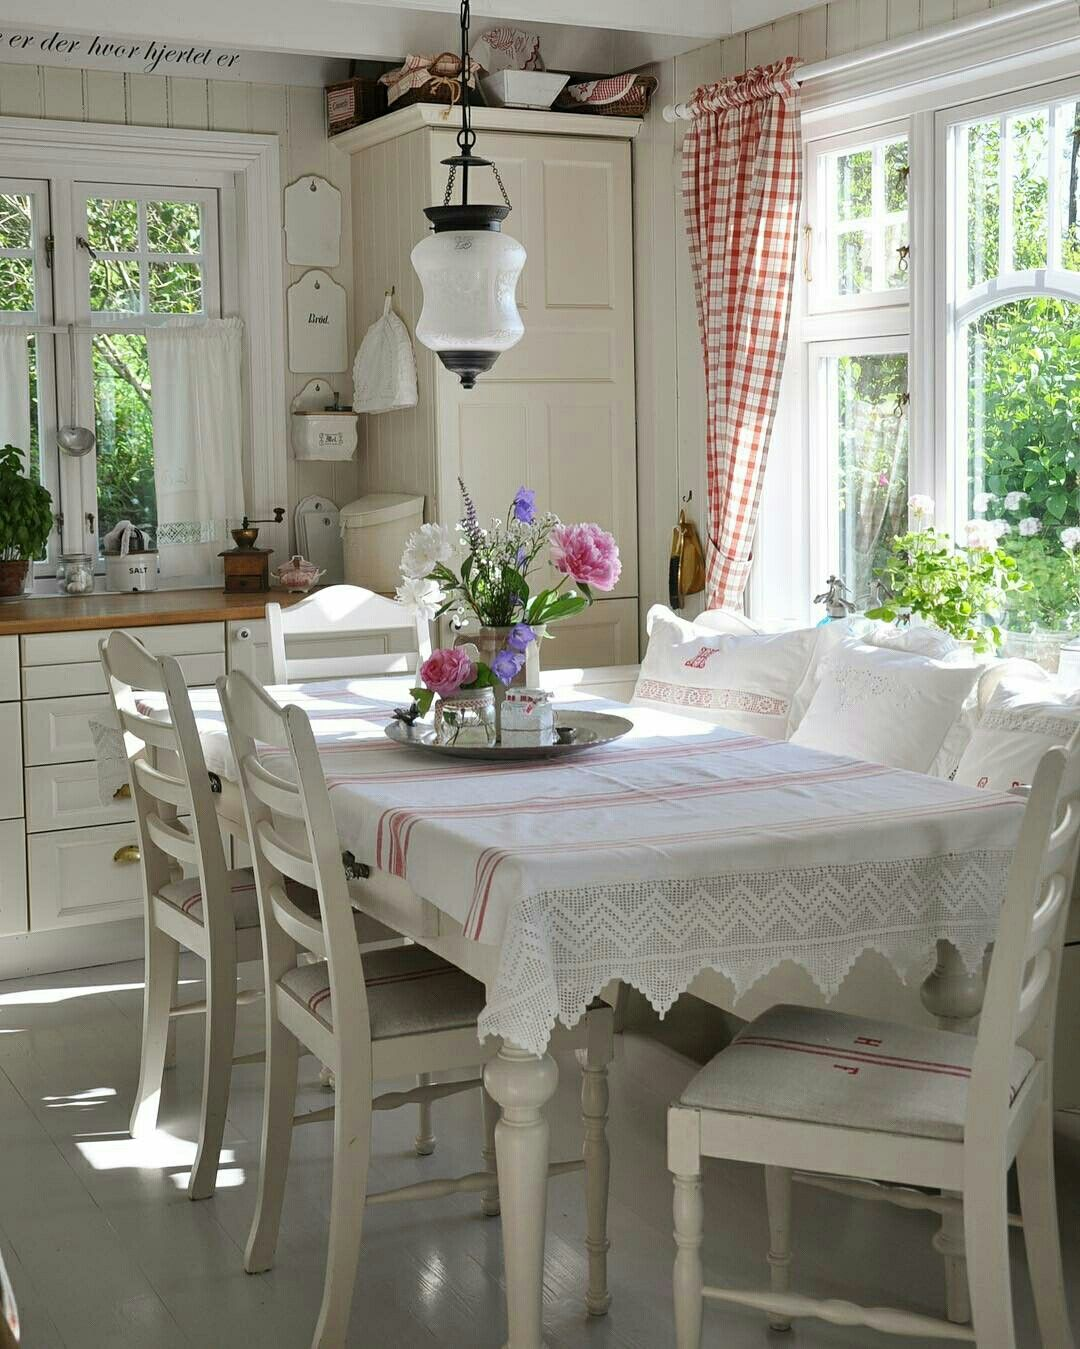 What an adorable white and cream kitchen with paneled walls So cozy ...